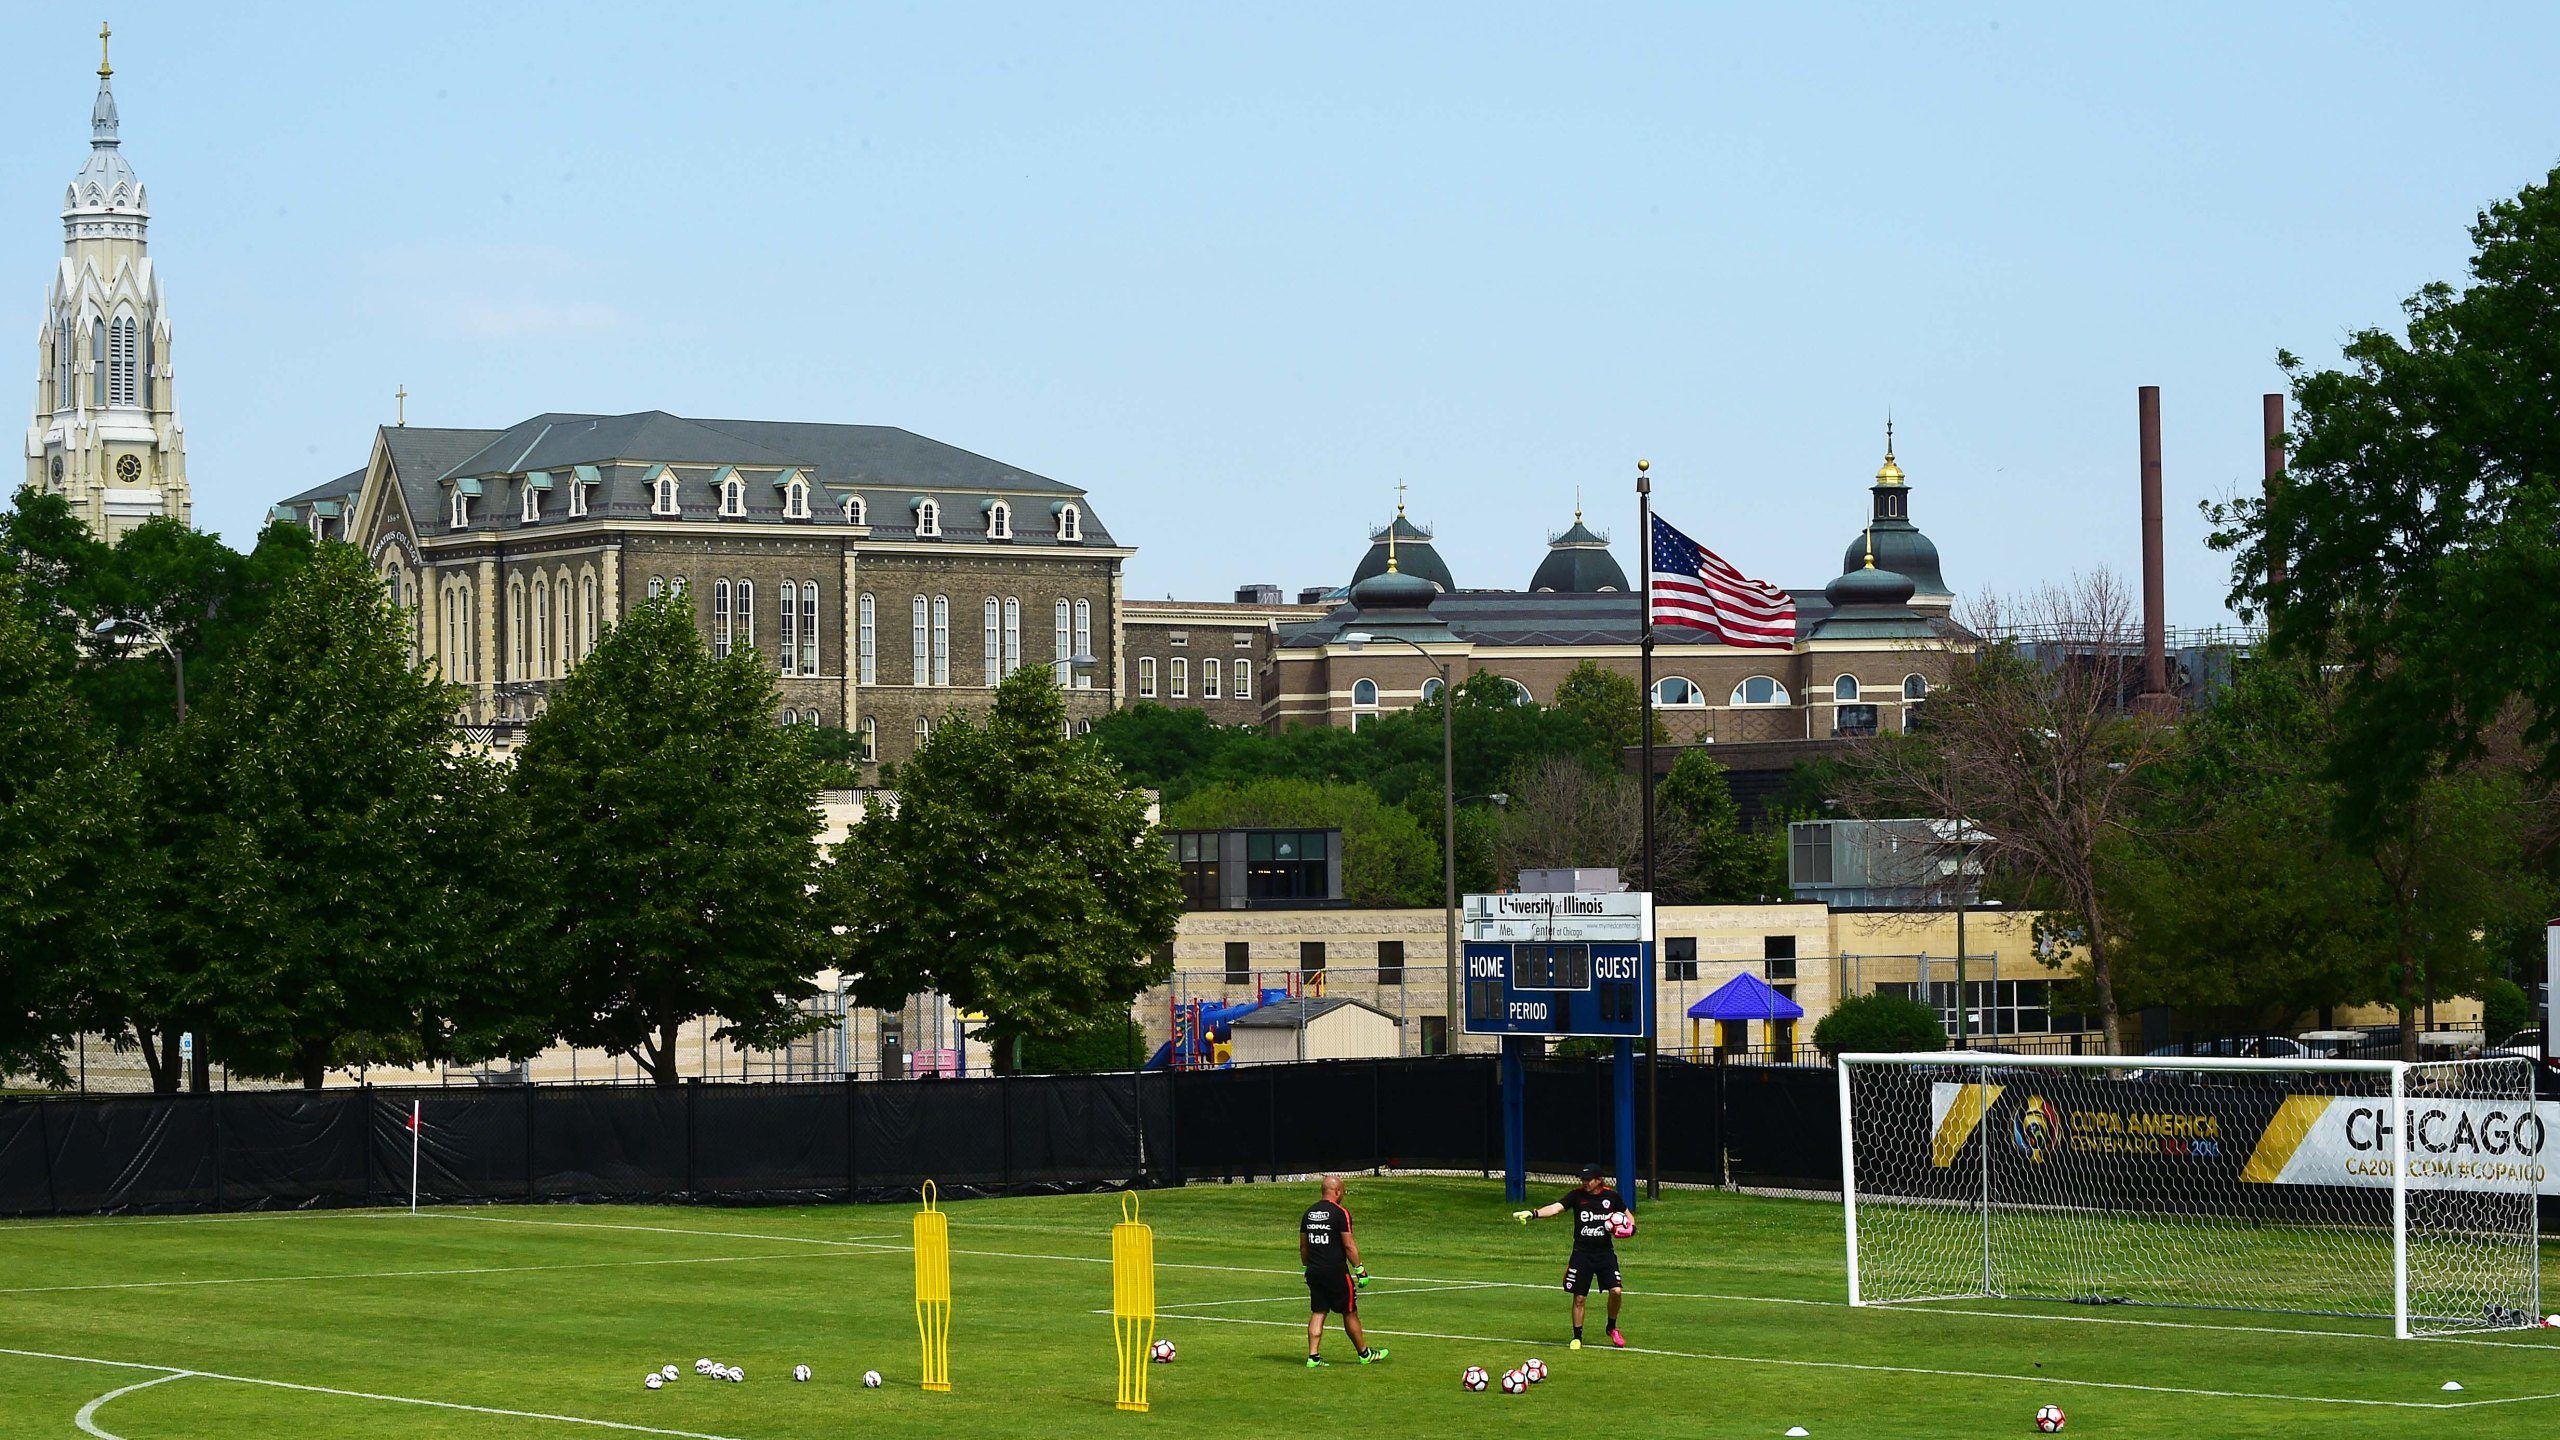 General view of the University of Illinois in Chicago as Chile's national soccer team attends a training session on June 20, 2016. (Credit: Alfredo Estrella / AFP / Getty Images)